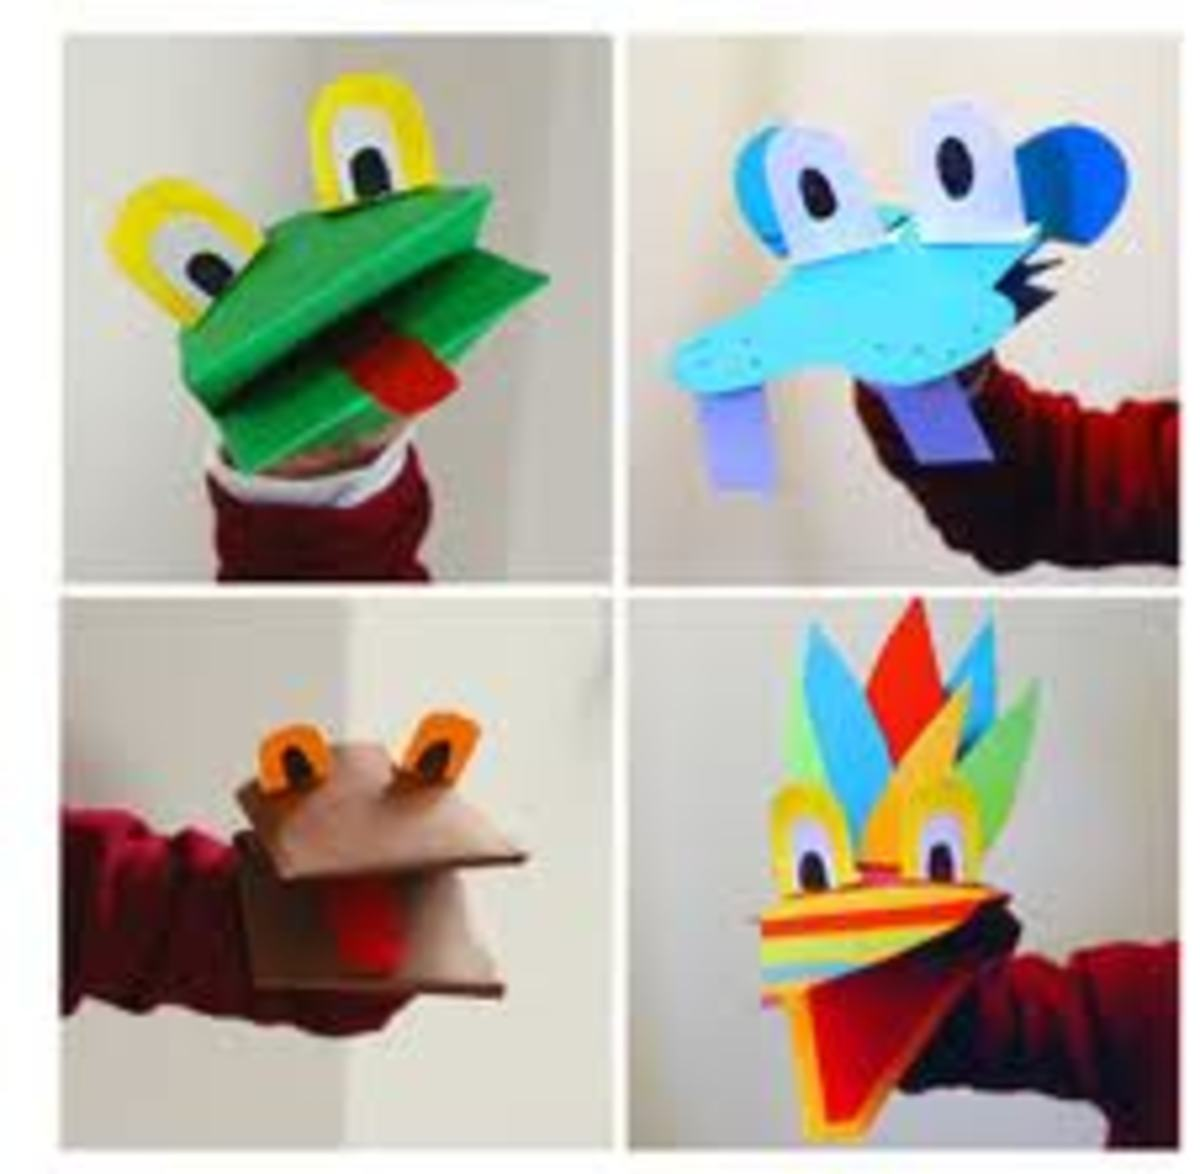 You can make your own puppets with socks or brown paper bags.